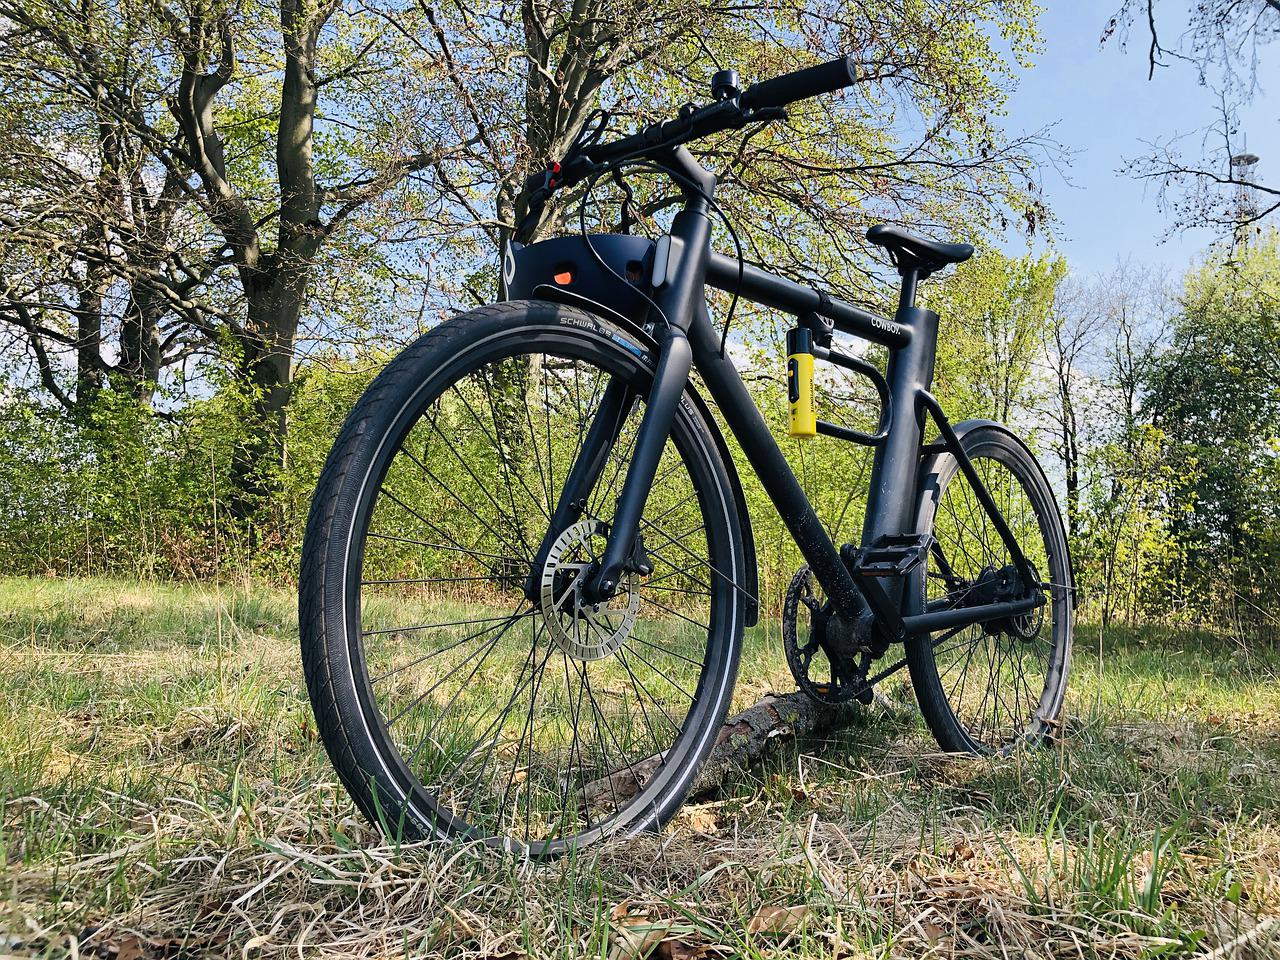 How to Buy Electric Bikes Online in California?